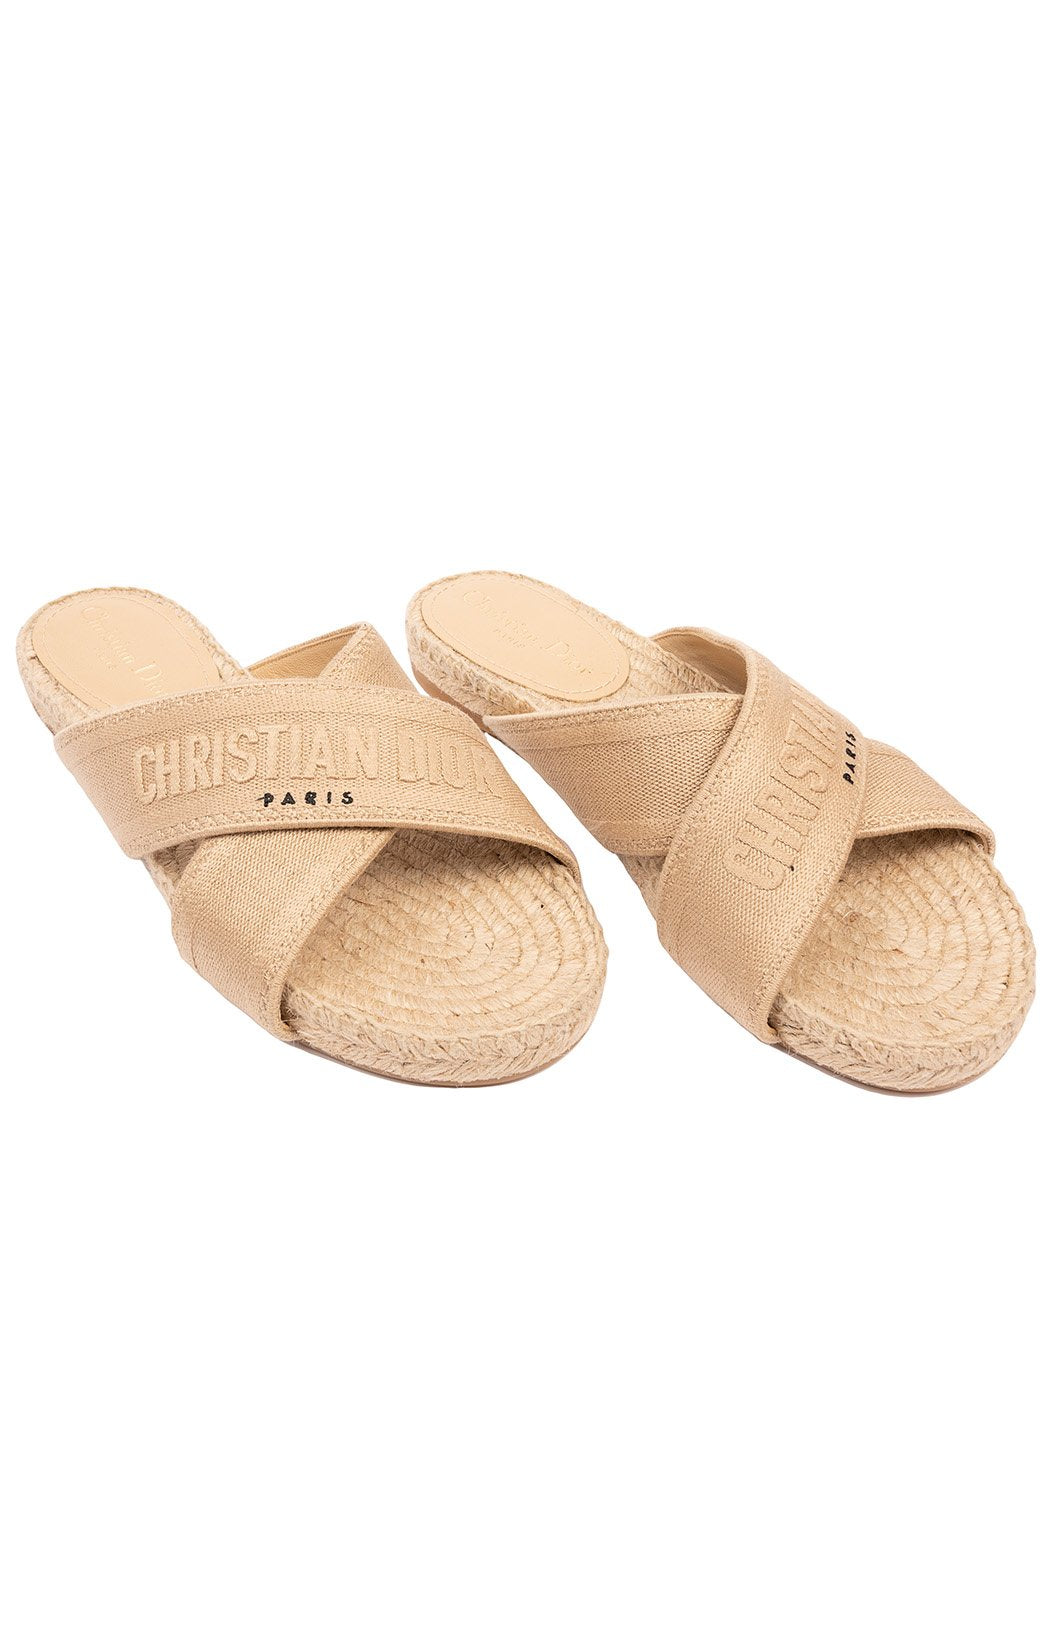 CHRISTIAN DIOR Sandals/slides Size: 39/ 9